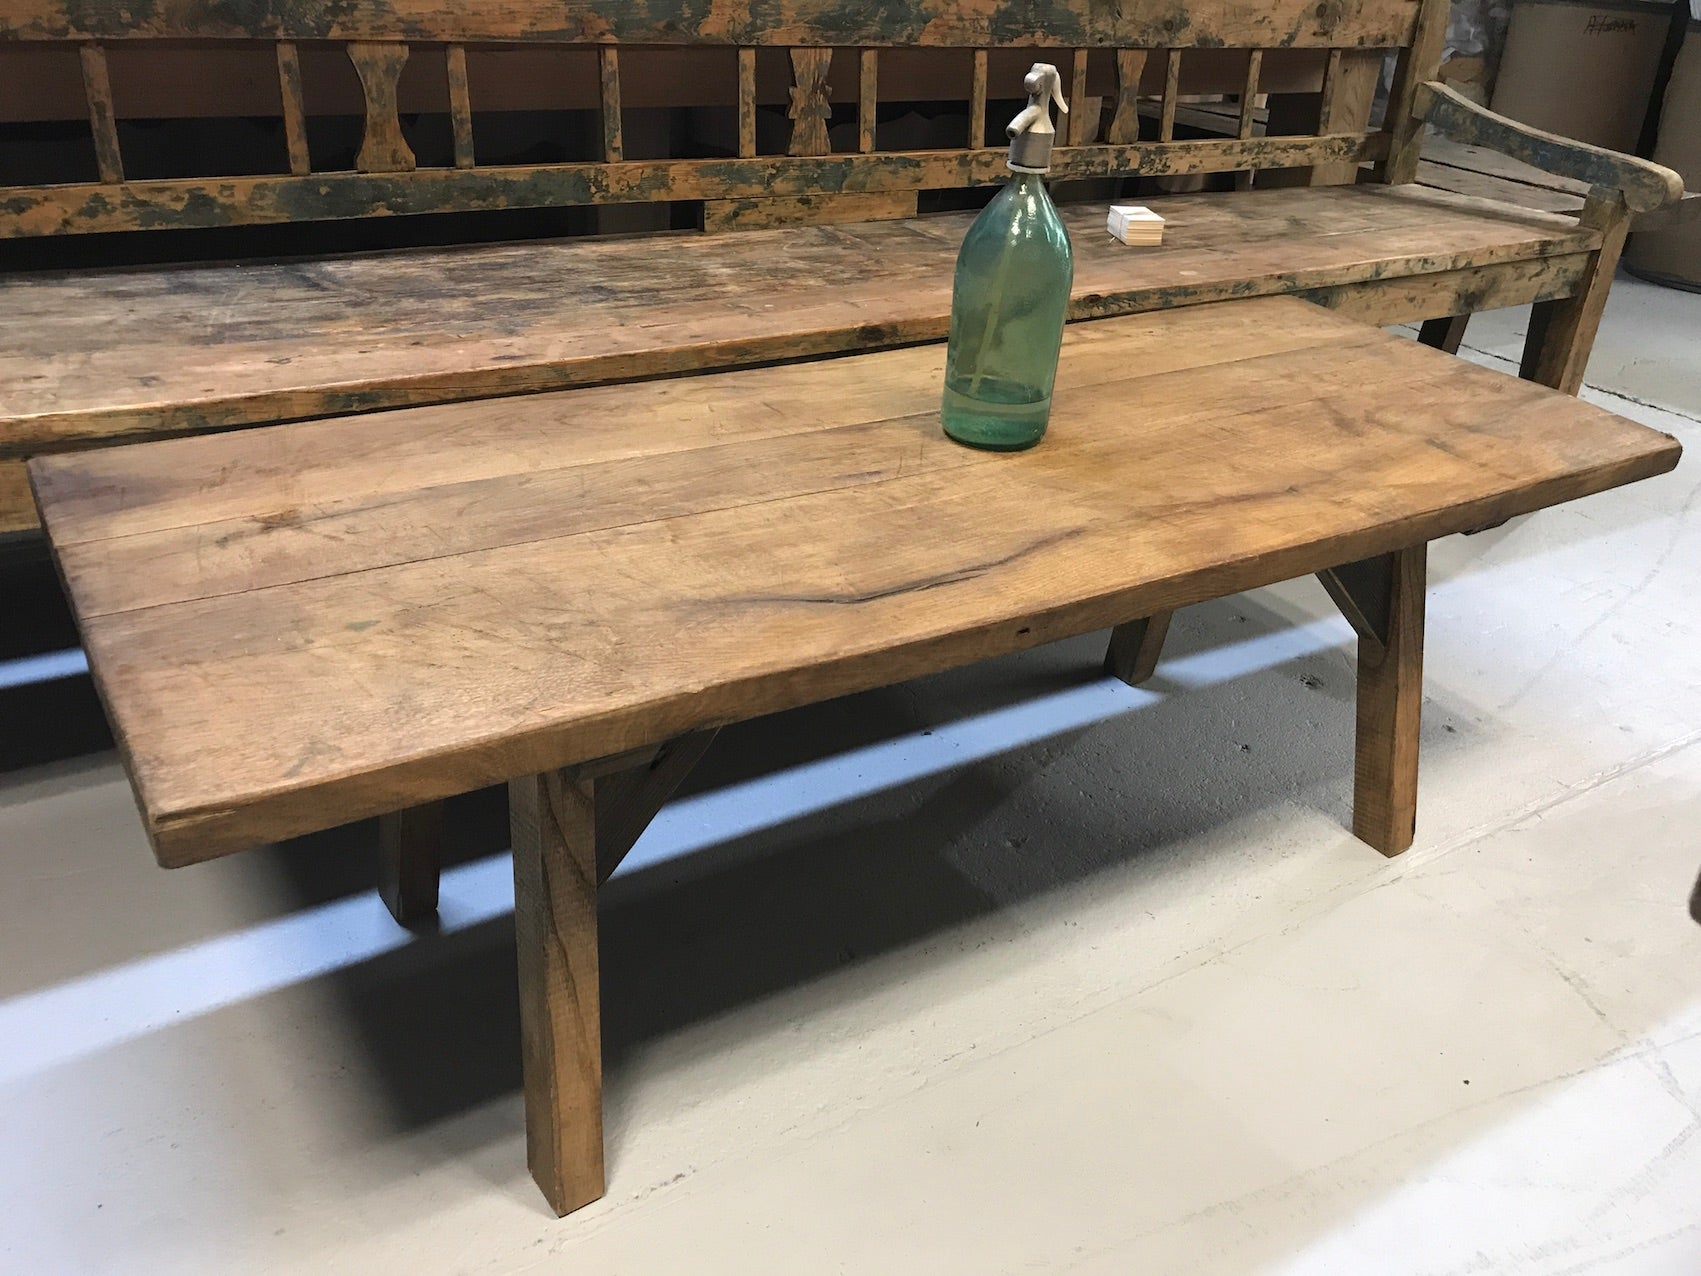 Vintage industrial European console wooden coffee table #2077